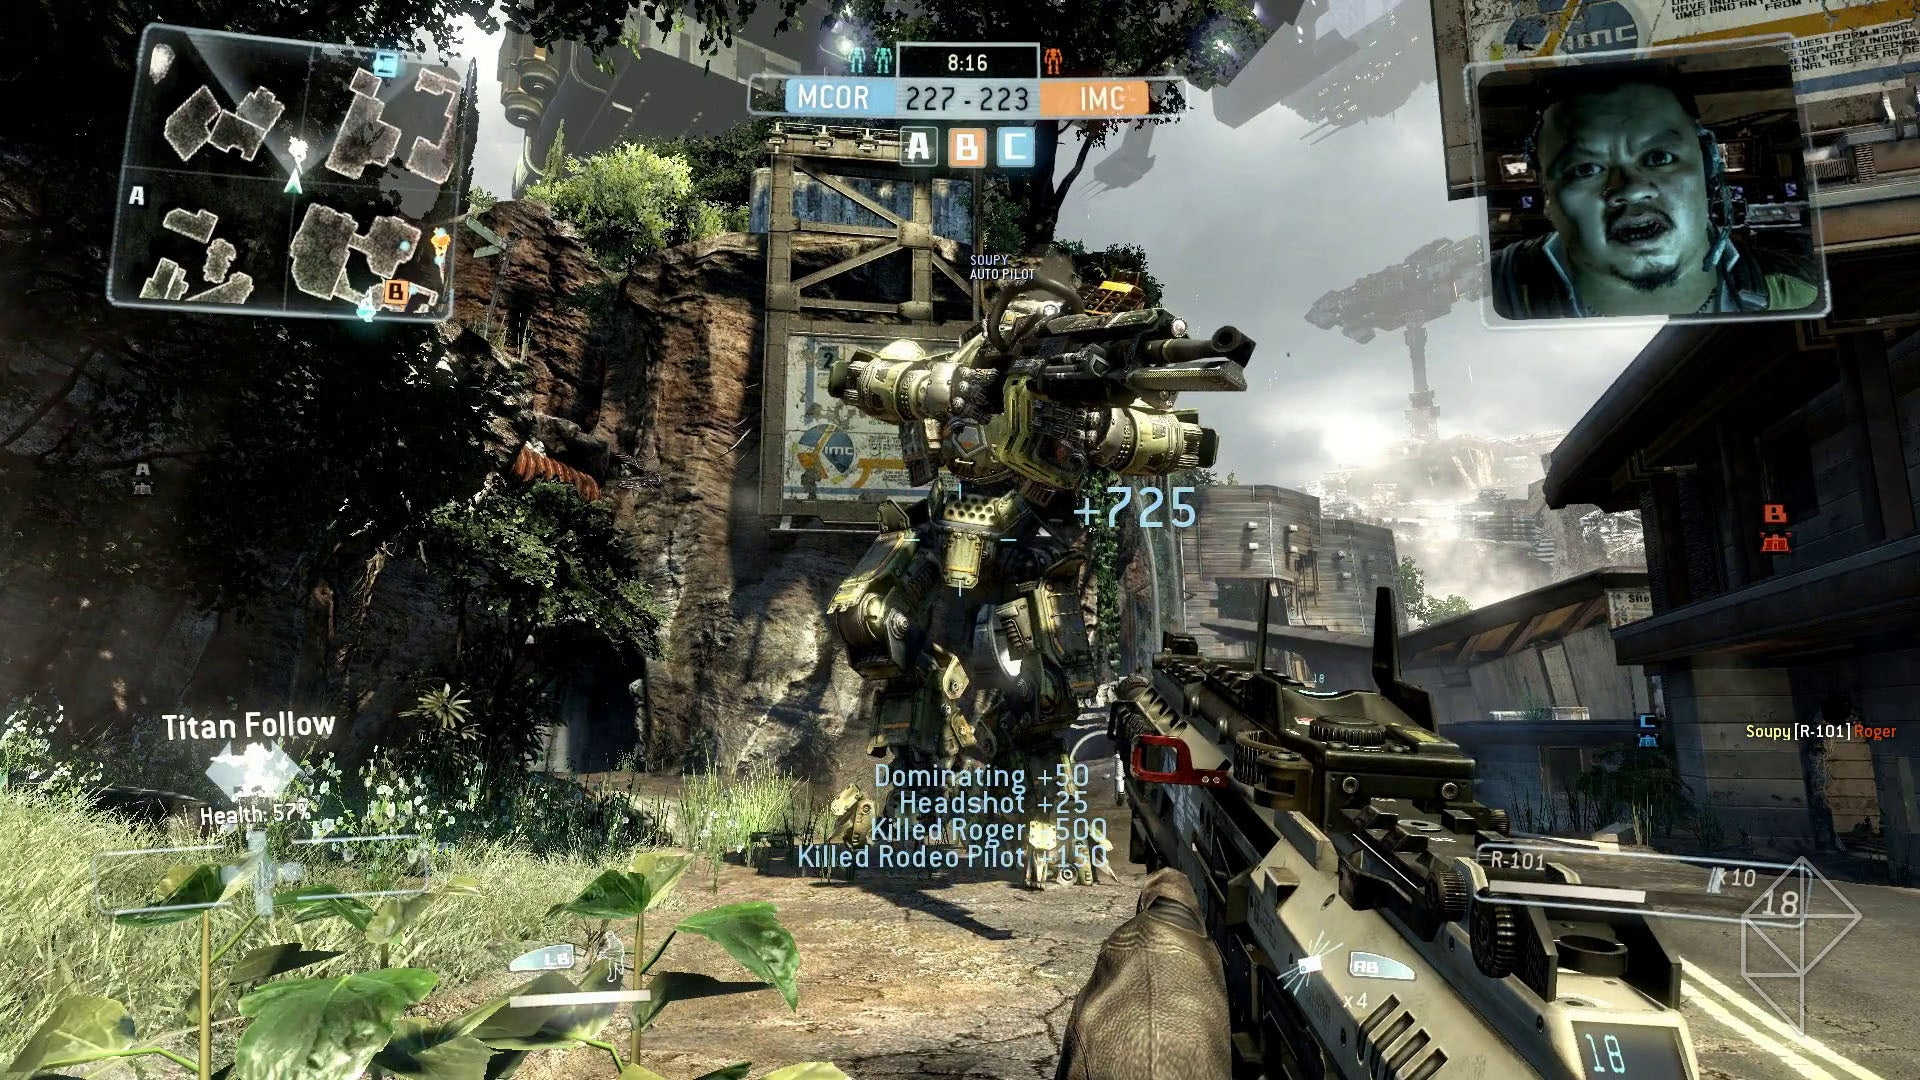 Ps4 Xbox One At Gamescom 2013 Which Came Off Best The Independent Rodeo Bundling 5 Titanfall